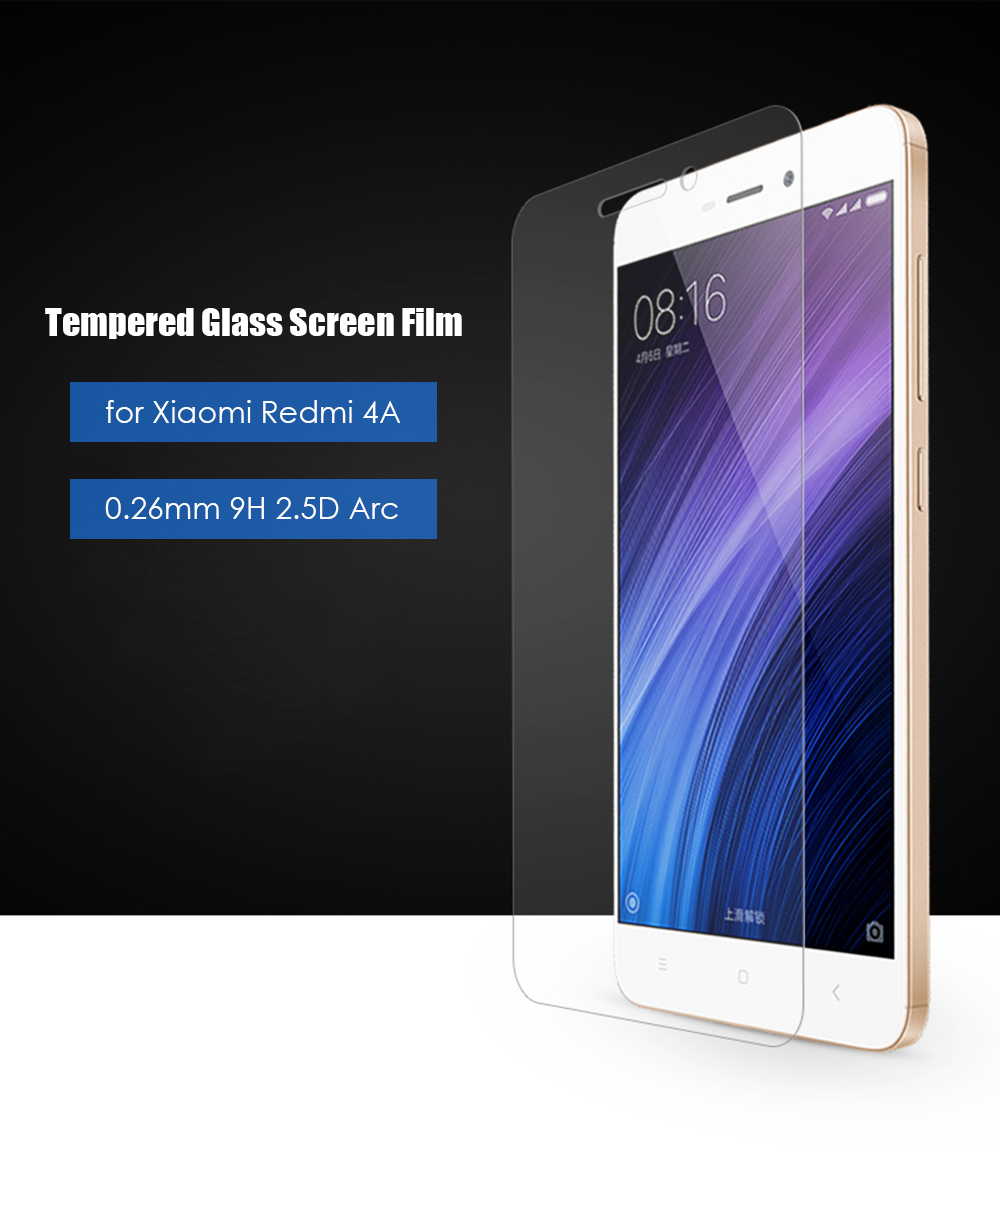 Luanke Tempered Glass Protective Film For Xiaomi Redmi 4a 662 Rakkipanda Screen Protector Mi4i Package Contents 1 X Dust Remover Wet Wipes Dry